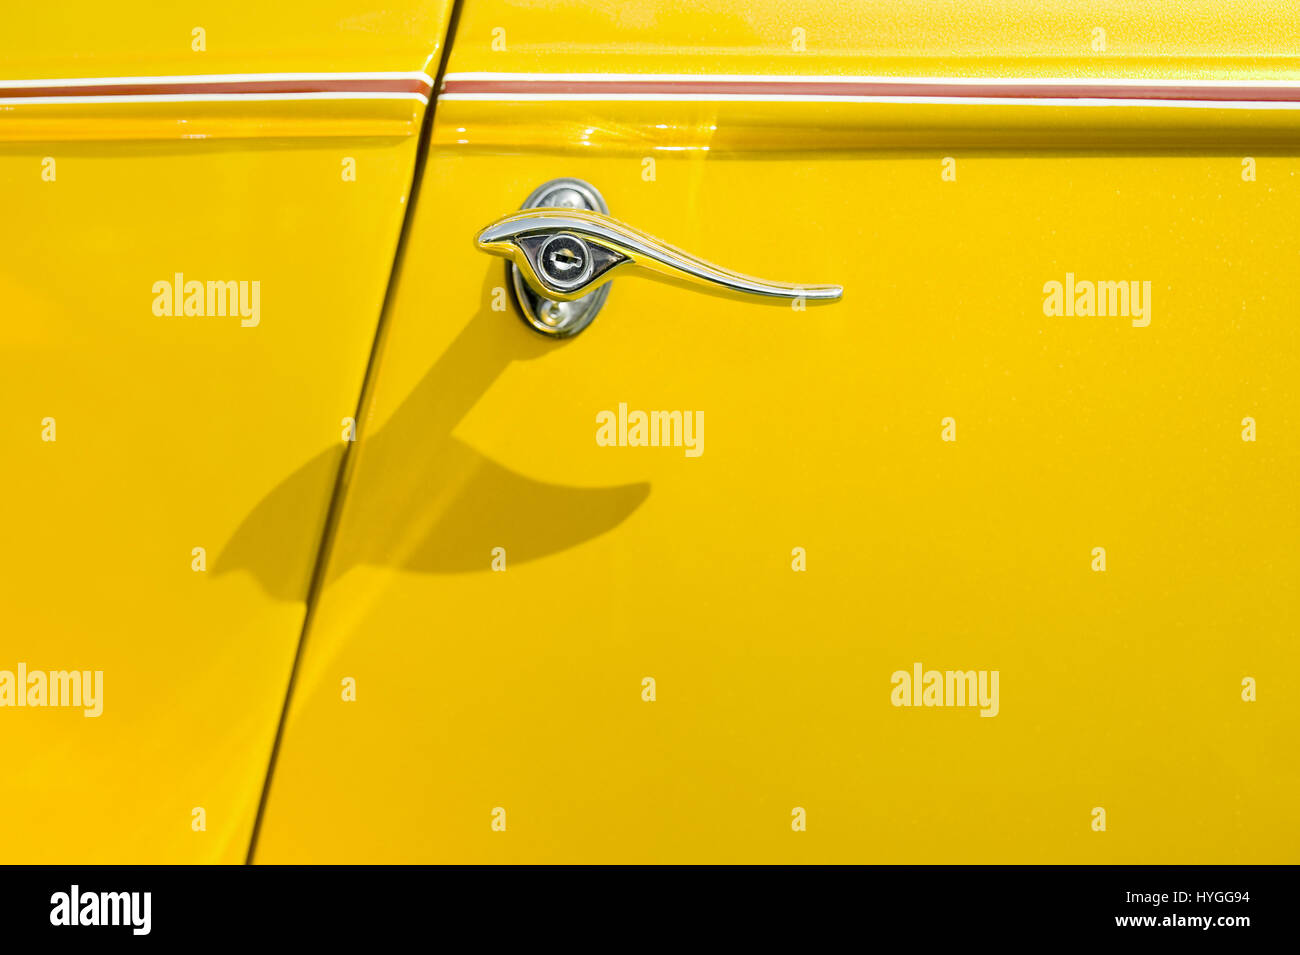 lever and glittering door panel of a bright yellow vehicle - Stock Image